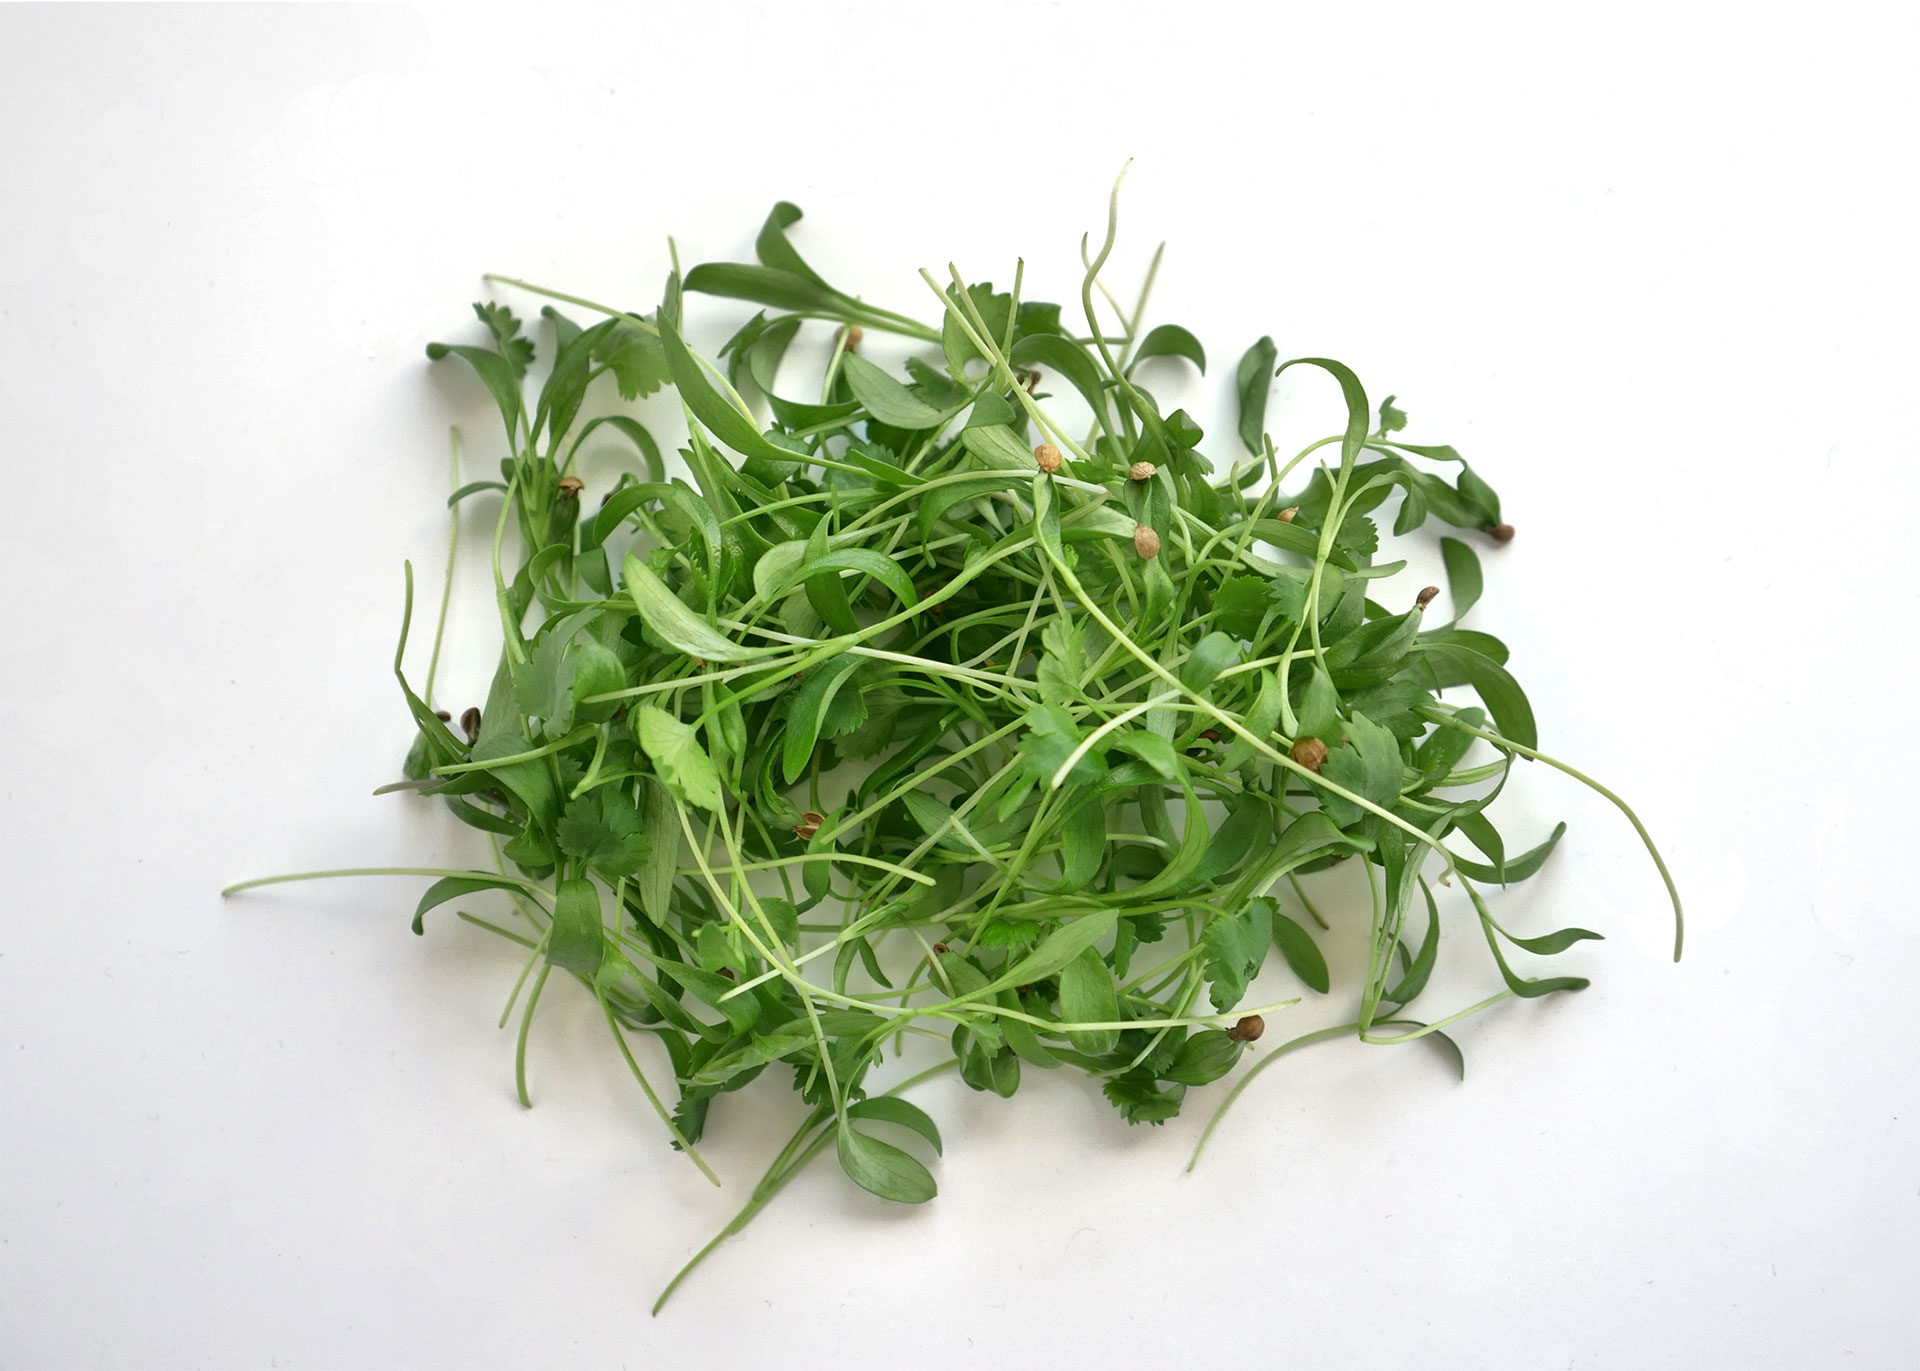 Cilantro microgreens by Infinite Harvest